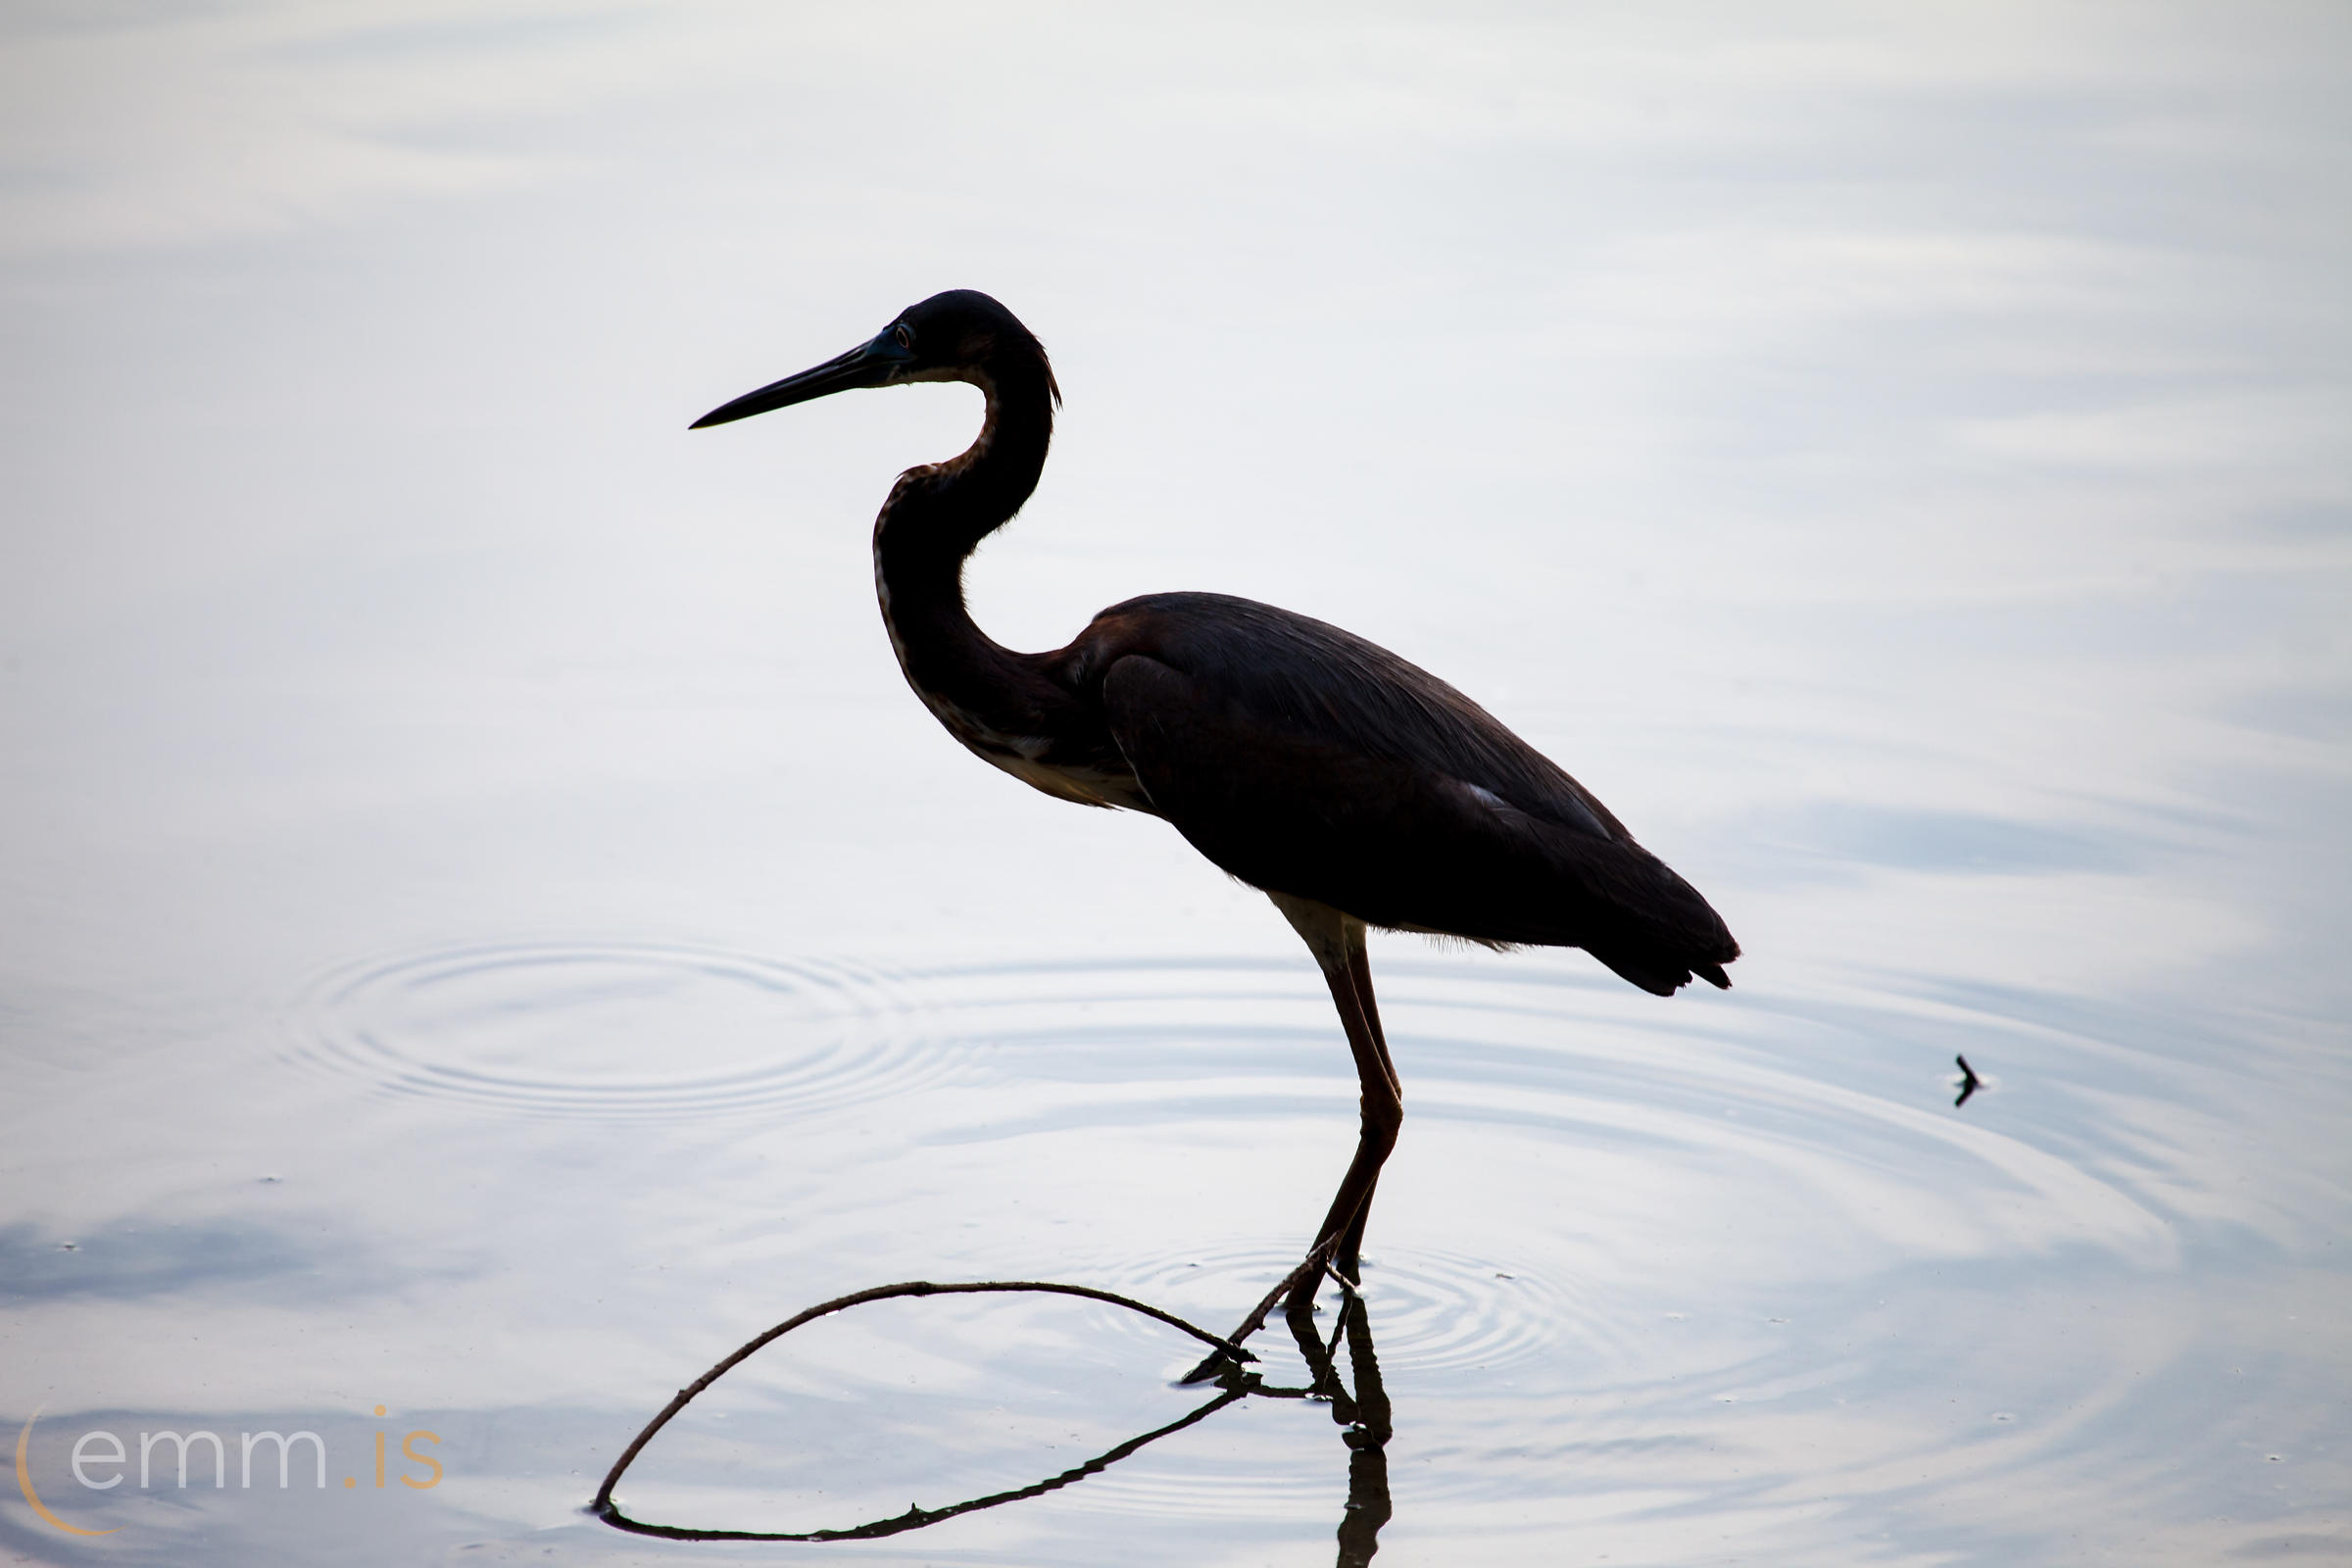 Hegri_-_Heron_in_a_Silhouette_in_Florida-_emm.is